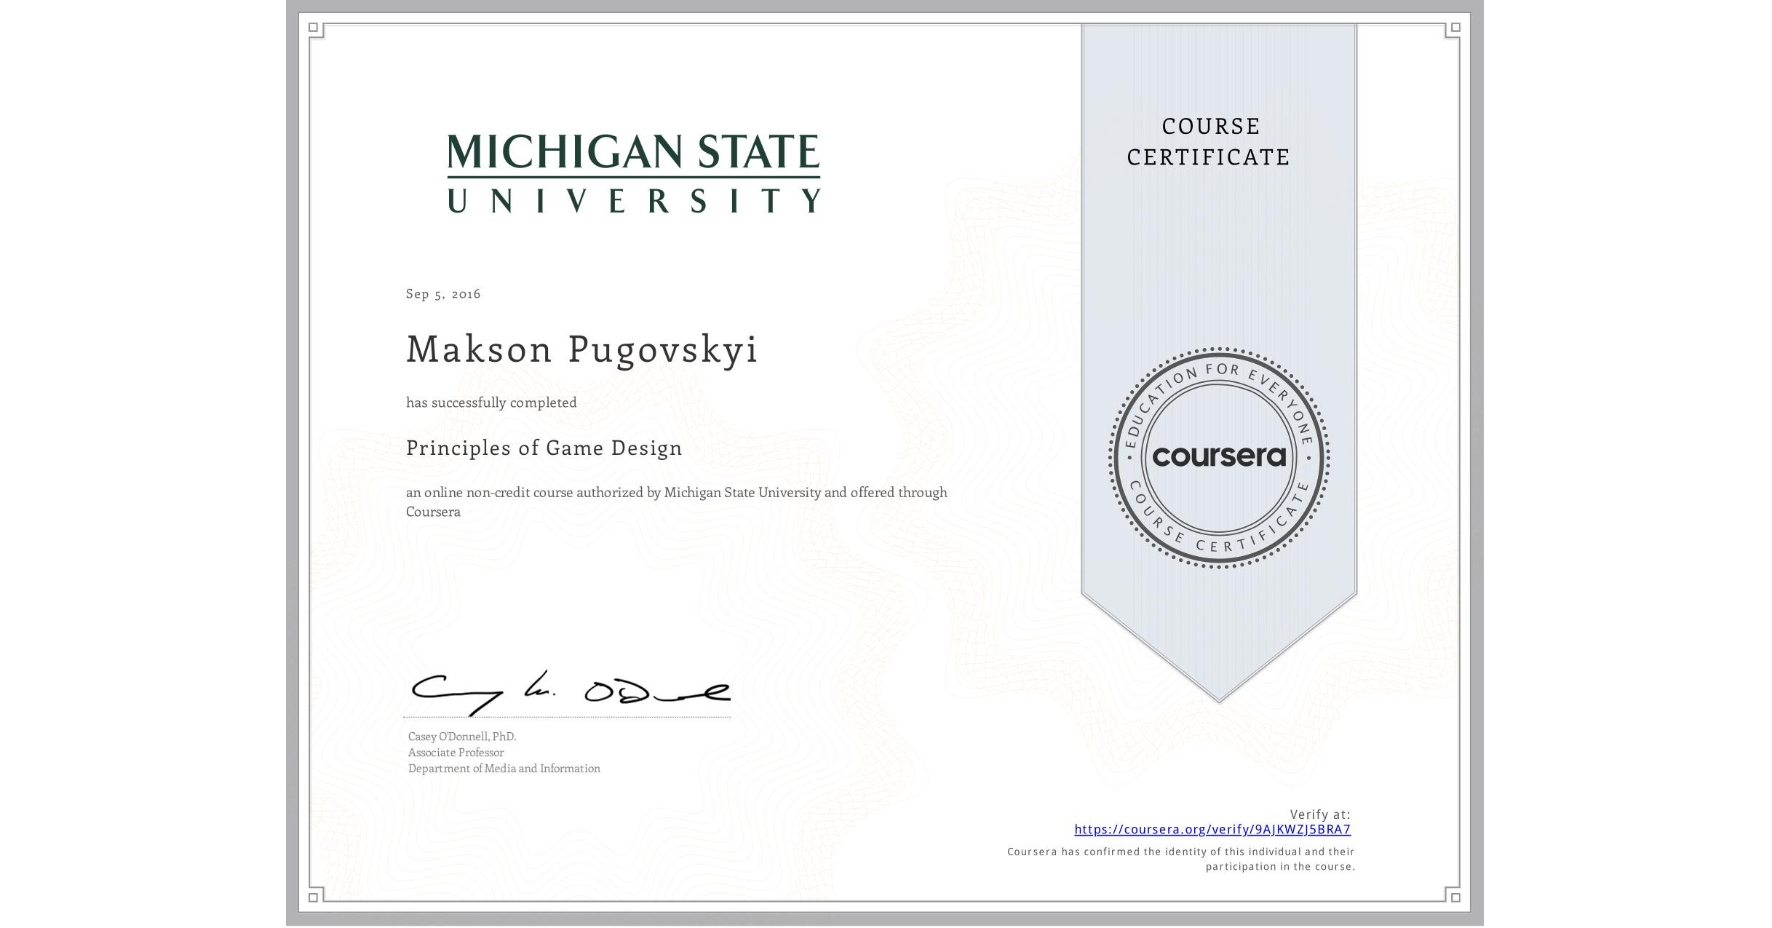 View certificate for Makson Pugovskyi, Principles of Game Design, an online non-credit course authorized by Michigan State University and offered through Coursera